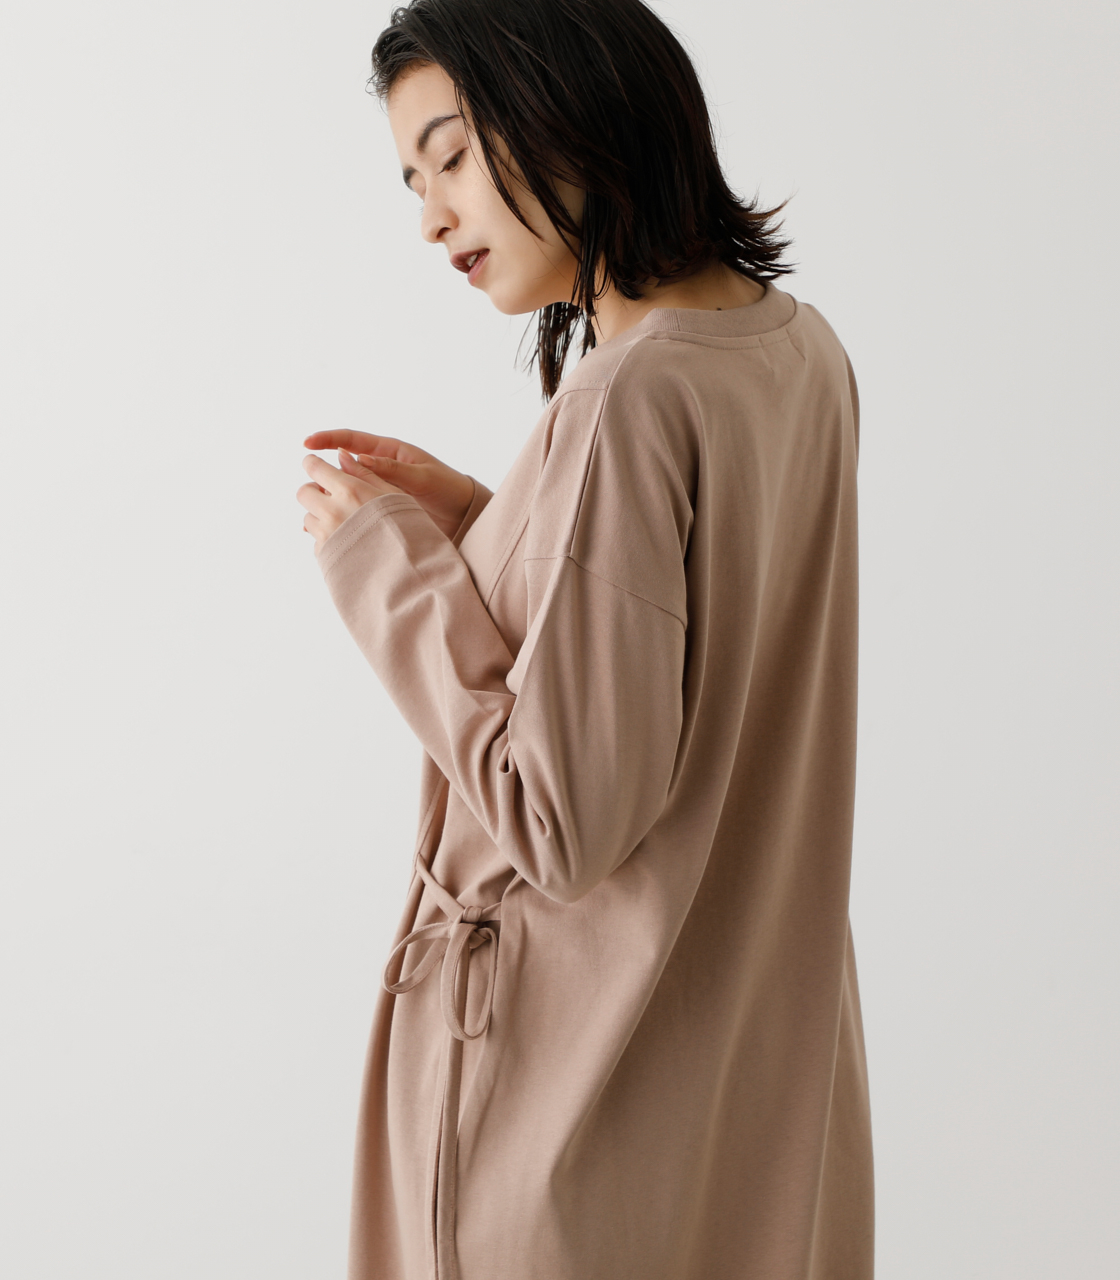 WAIST RIBBON SLIT LONG TOPS/ウエストリボンスリットロングトップス 詳細画像 BEG 3